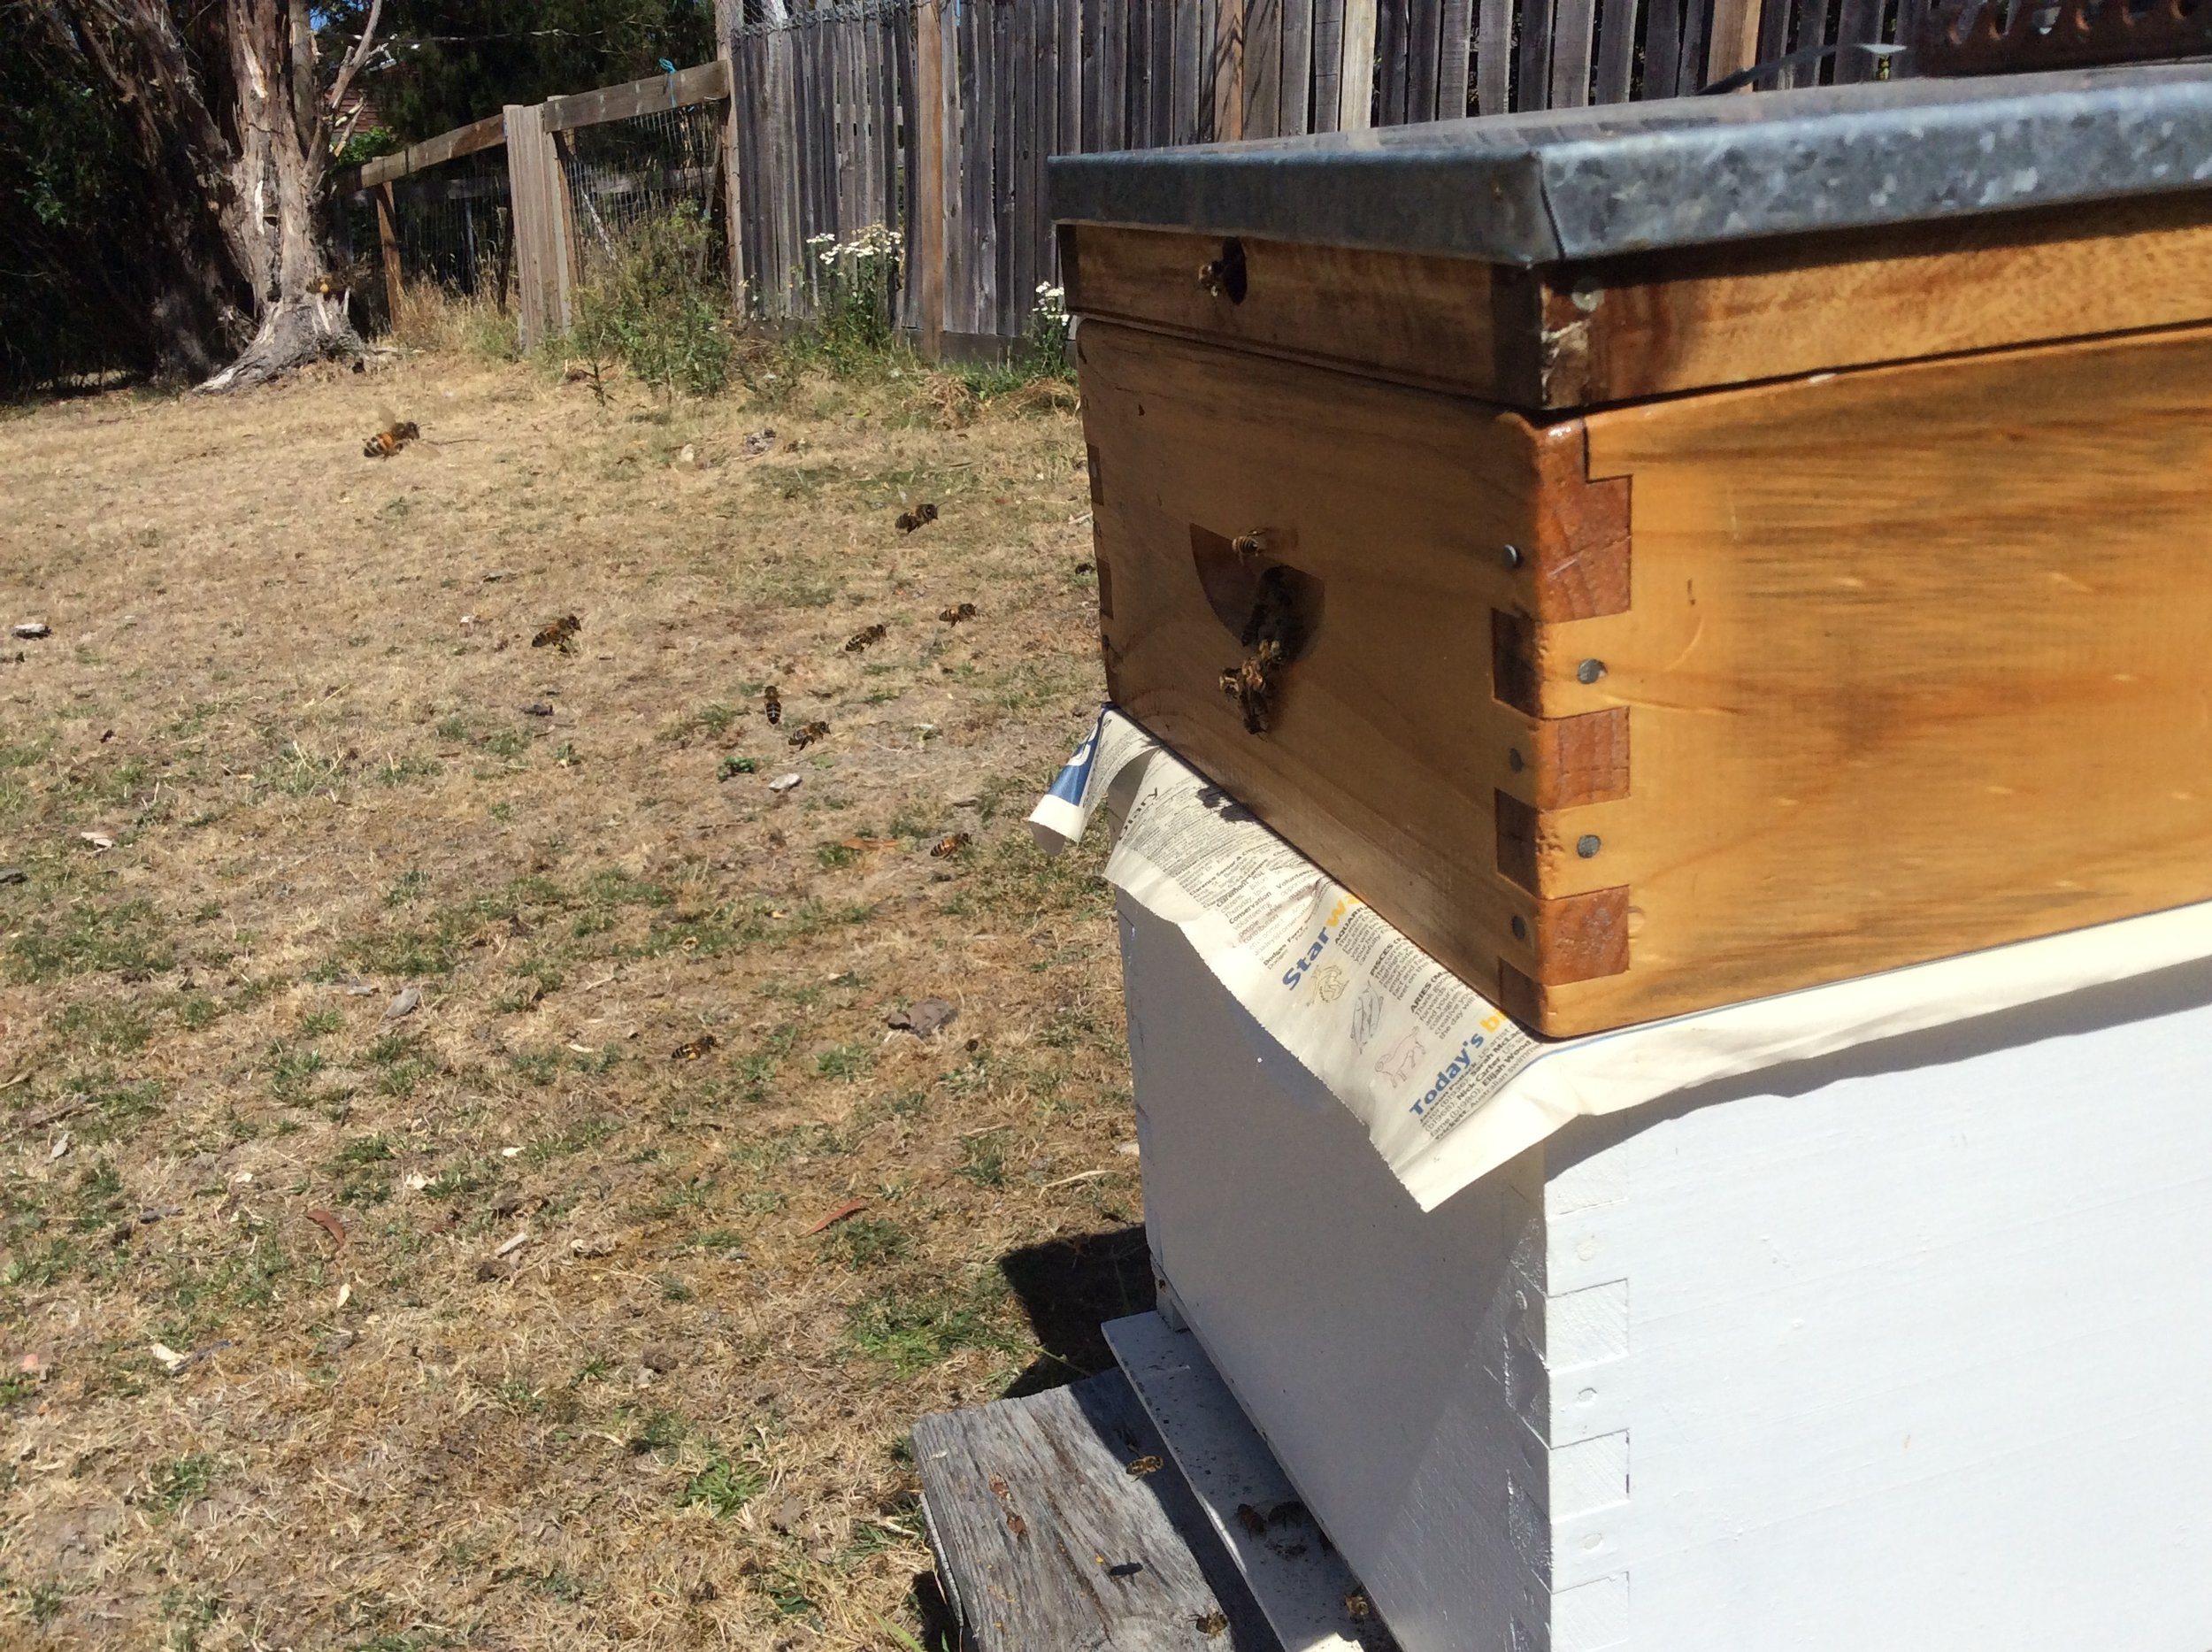 Papering two weaker hives.